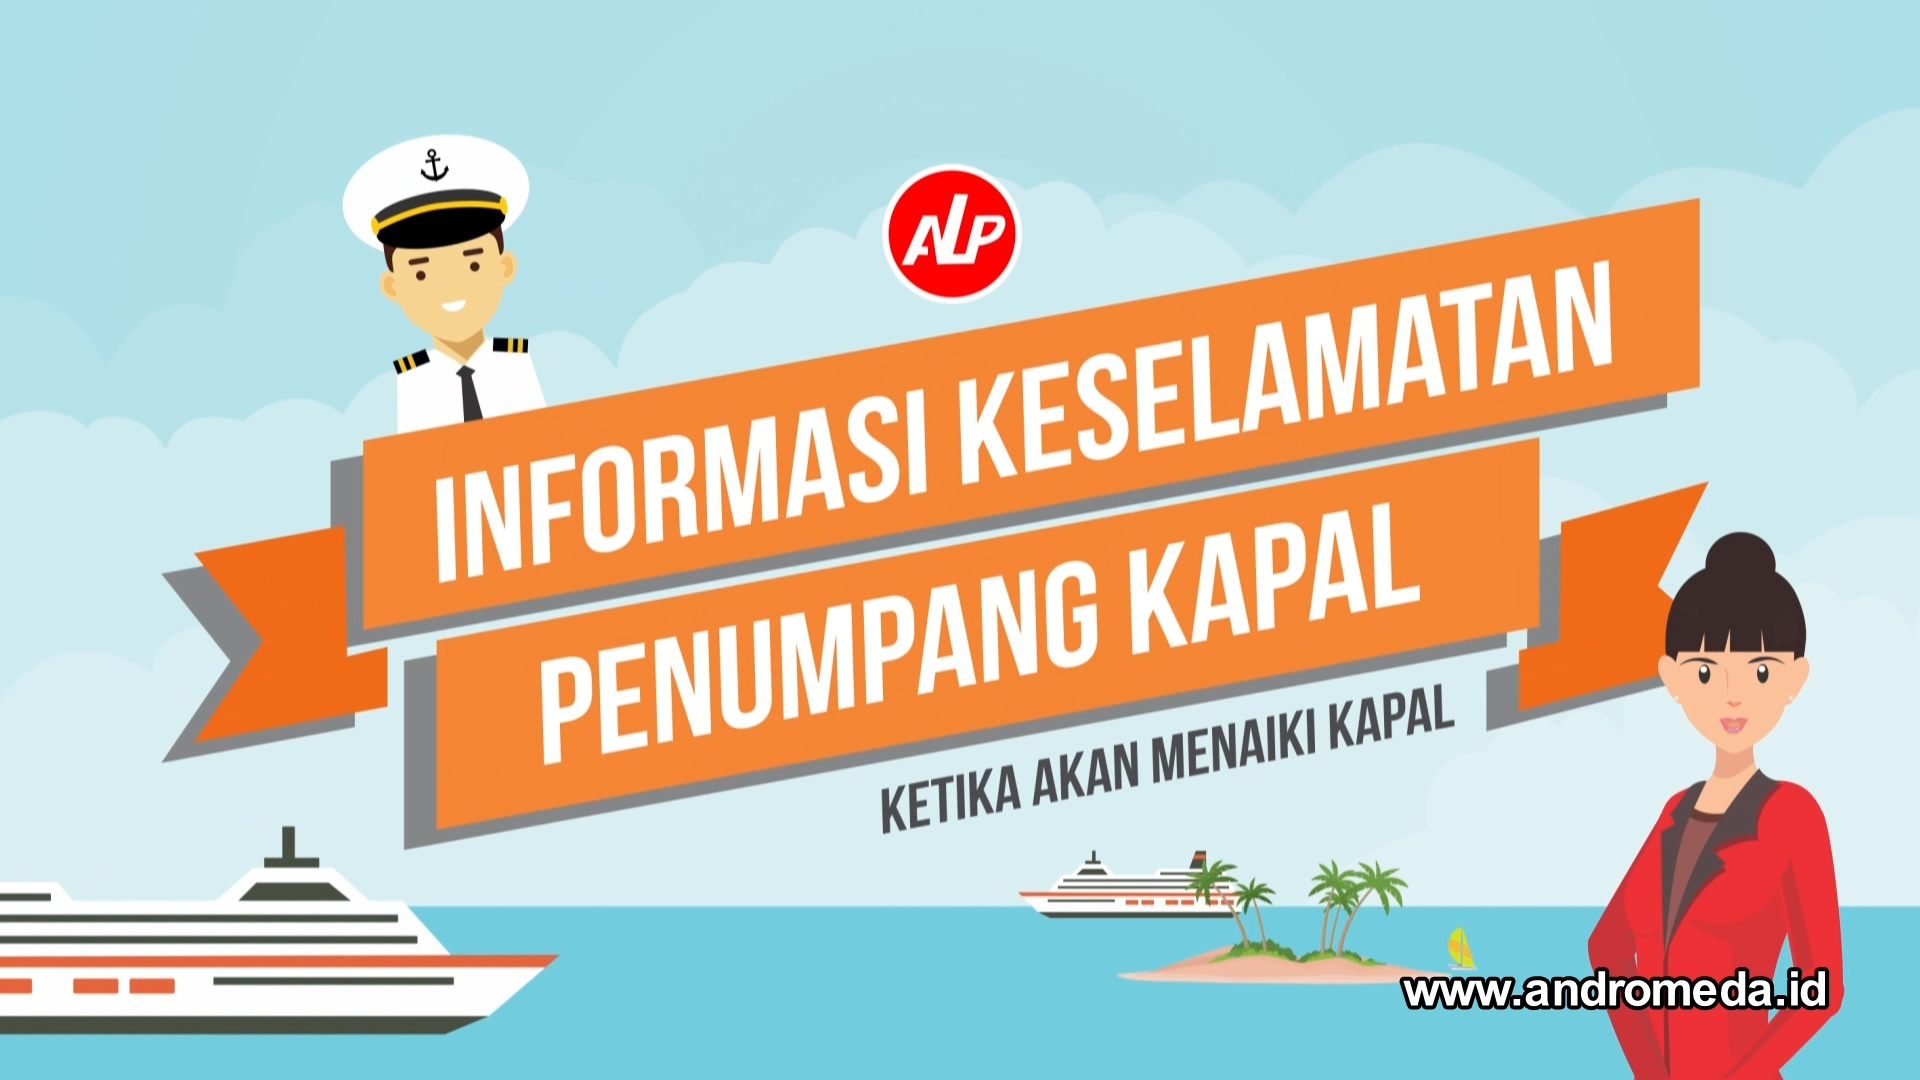 video keselamatan di kapal, video safety animasi keselamatan di kapal, video safety briefing di kapal, video safety induction di kapal, video safety animasi di kapal, safety video, infographic video, video infographic, infographic design, video infografis, infografis animasi, animasi infografis